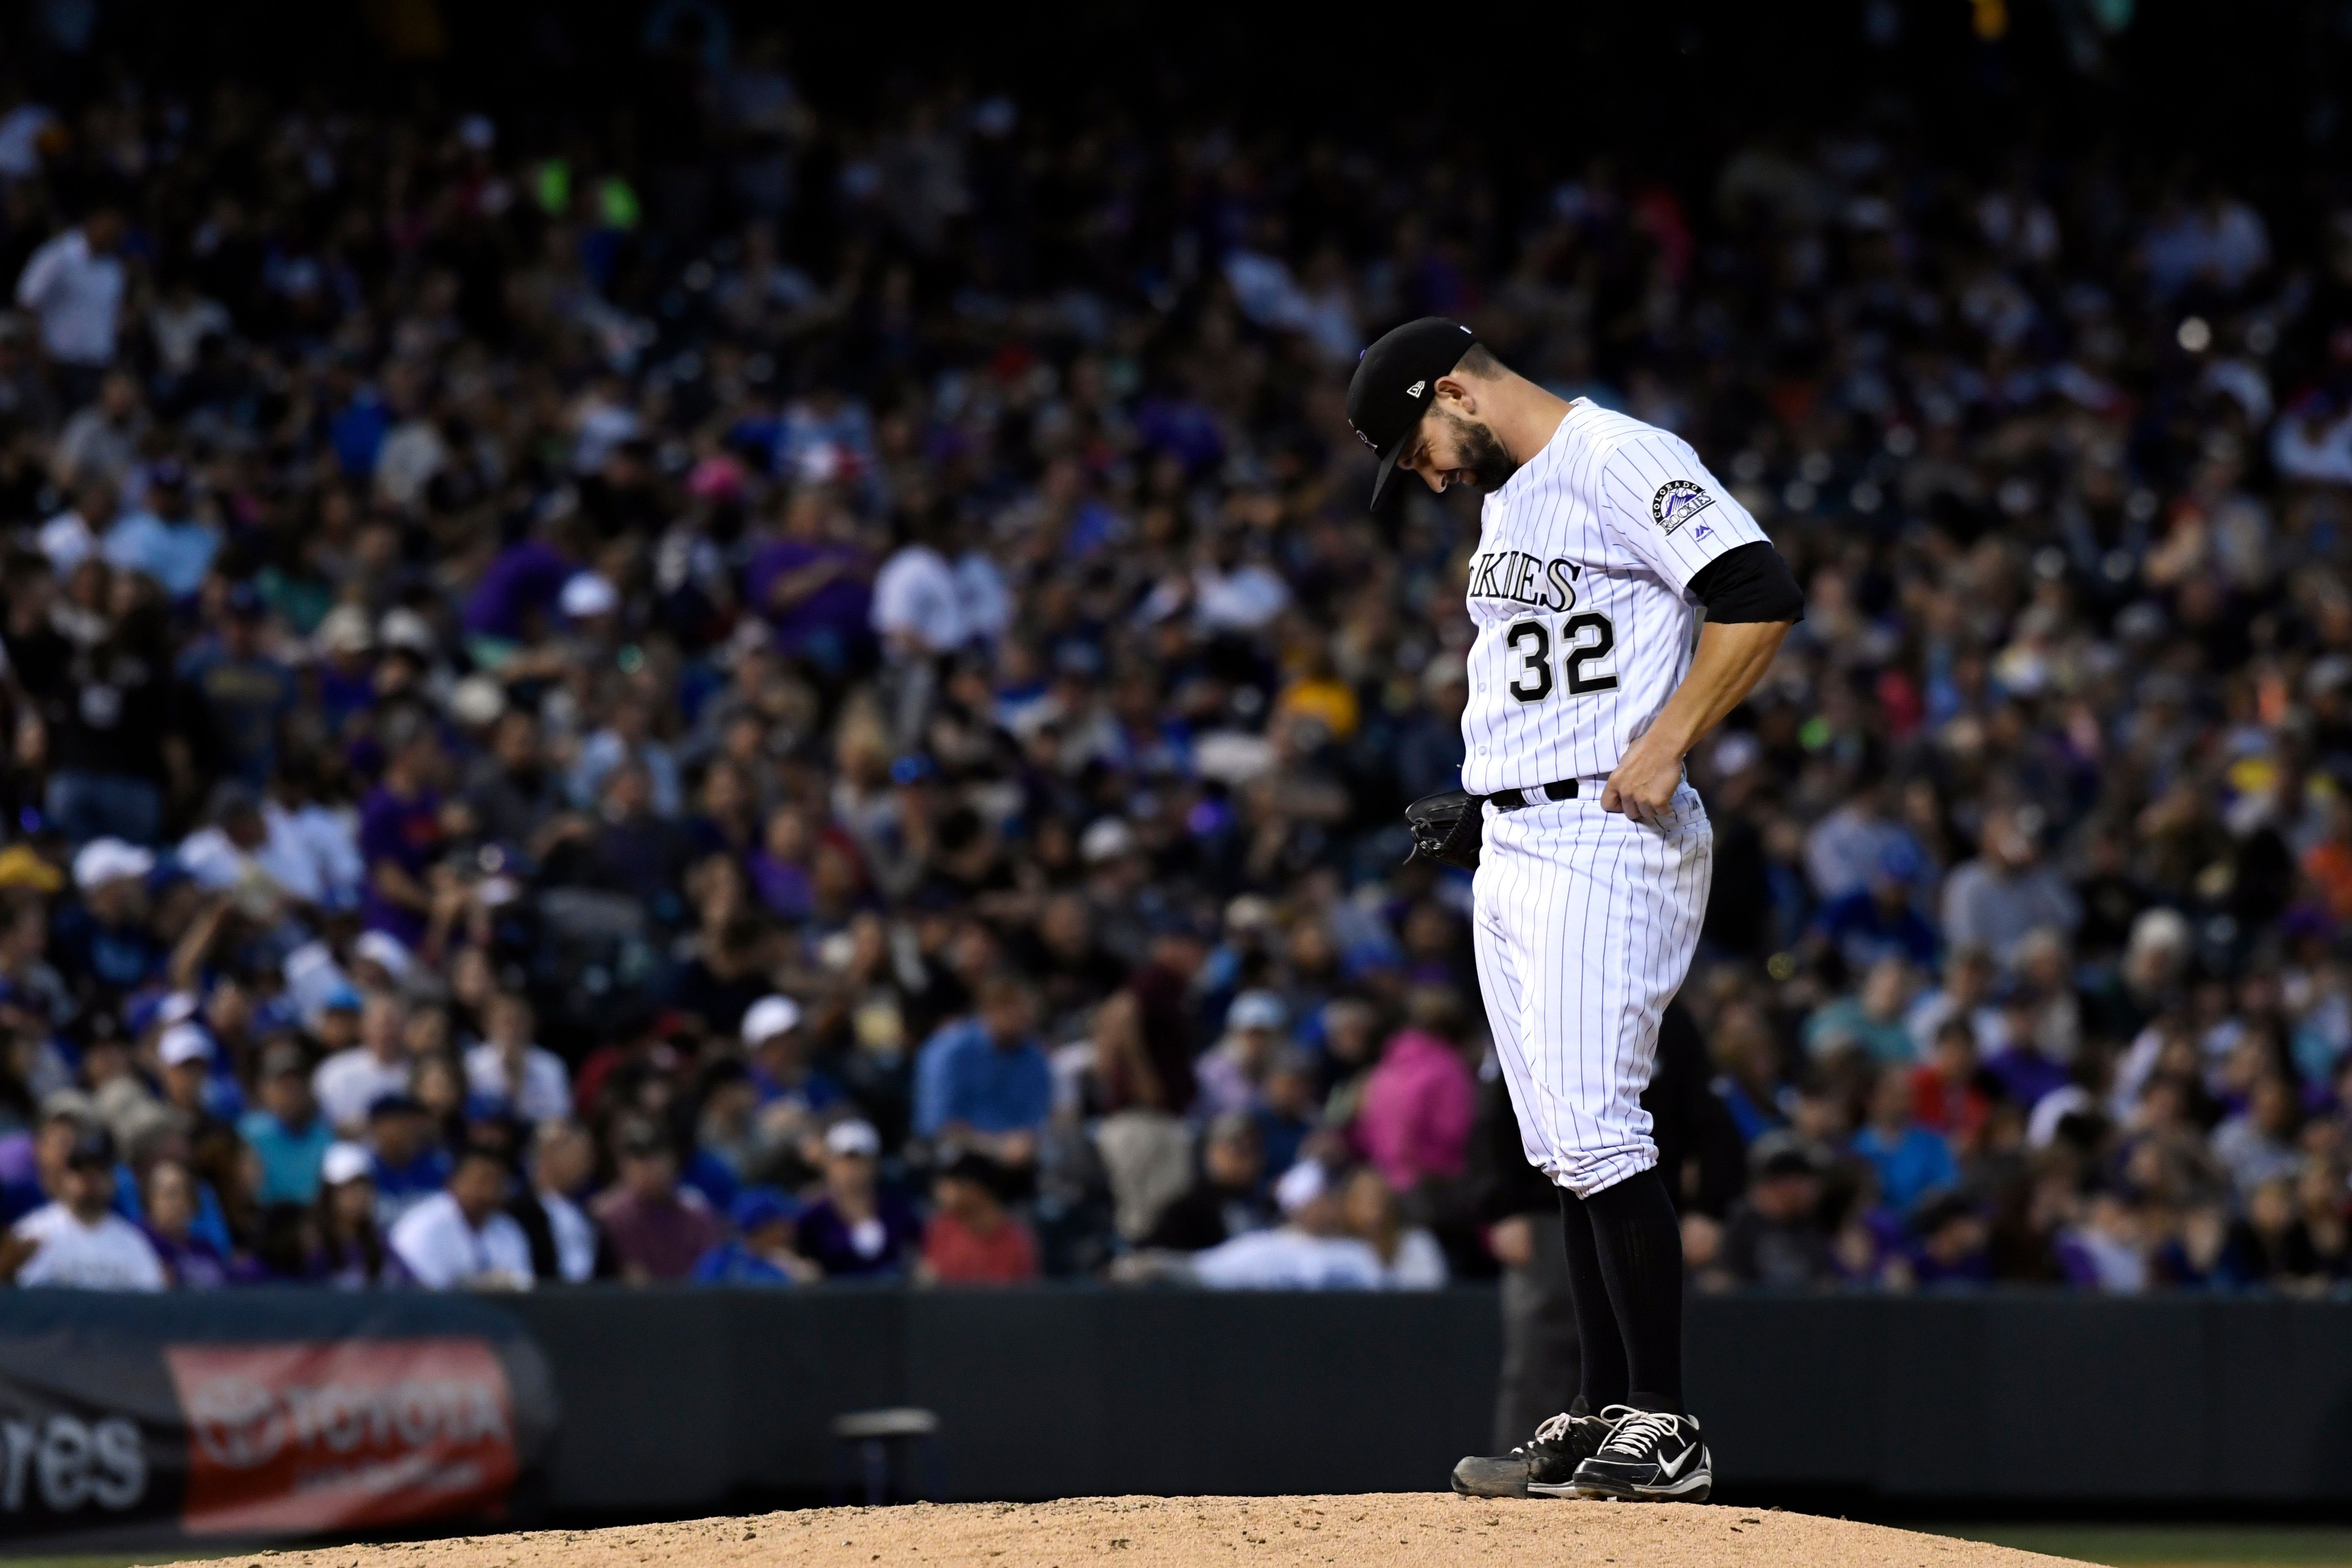 DENVER, CO - MAY 12: Colorado Rockies starting pitcher Tyler Chatwood (32) puts his head down as he waits for Colorado Rockies manager Bud Black to visit the mound in the fifth inning against the Los Angeles Dodgers on May 12, 2017 in Denver, Colorado at Coors Field. Black pulled Chatwood in the inning. (Photo by John Leyba/The Denver Post via Getty Images)